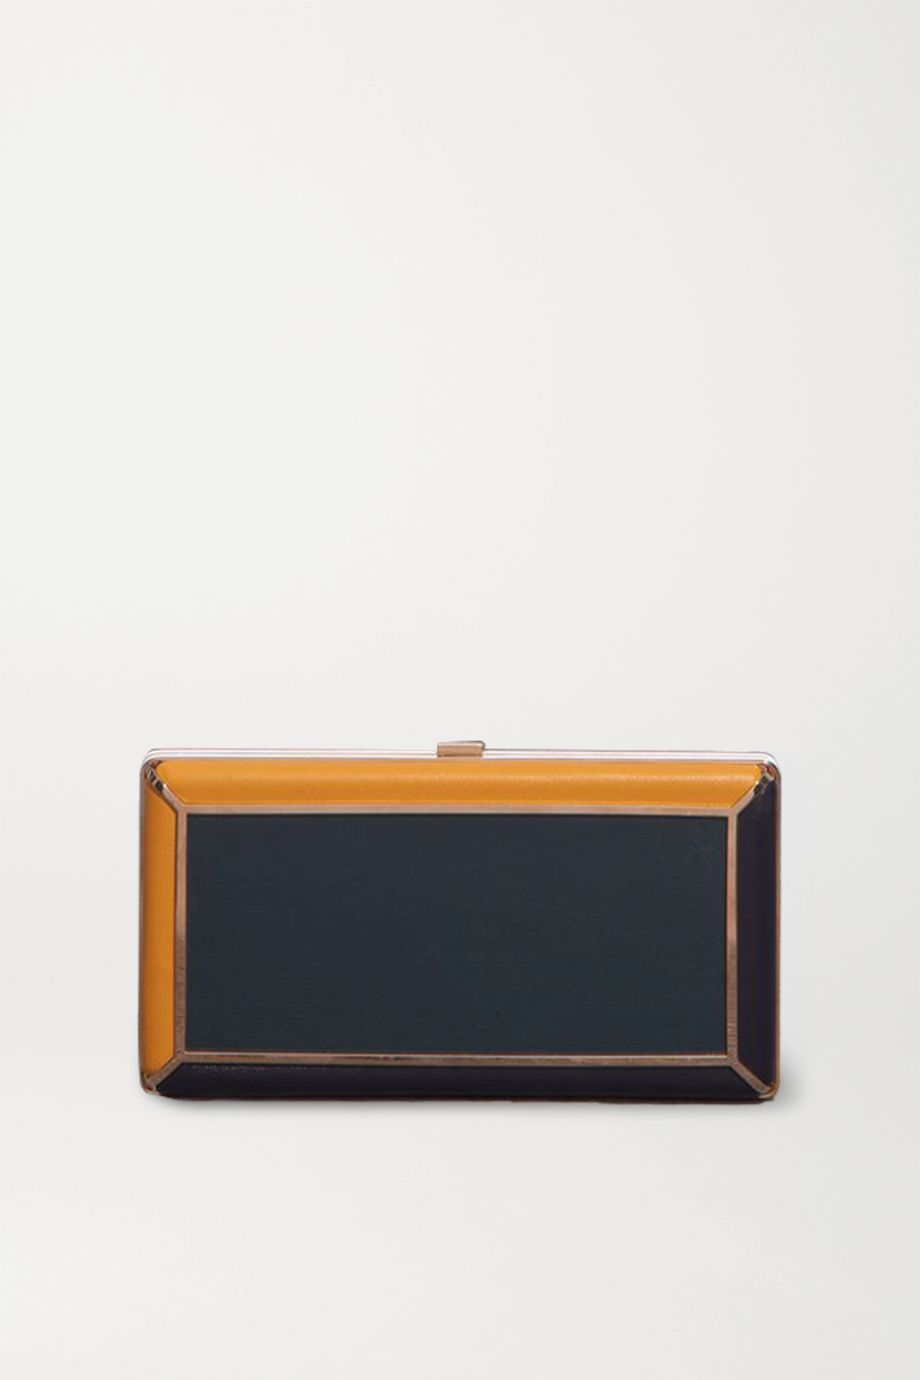 Gabriela Hearst Callas color-block leather clutch